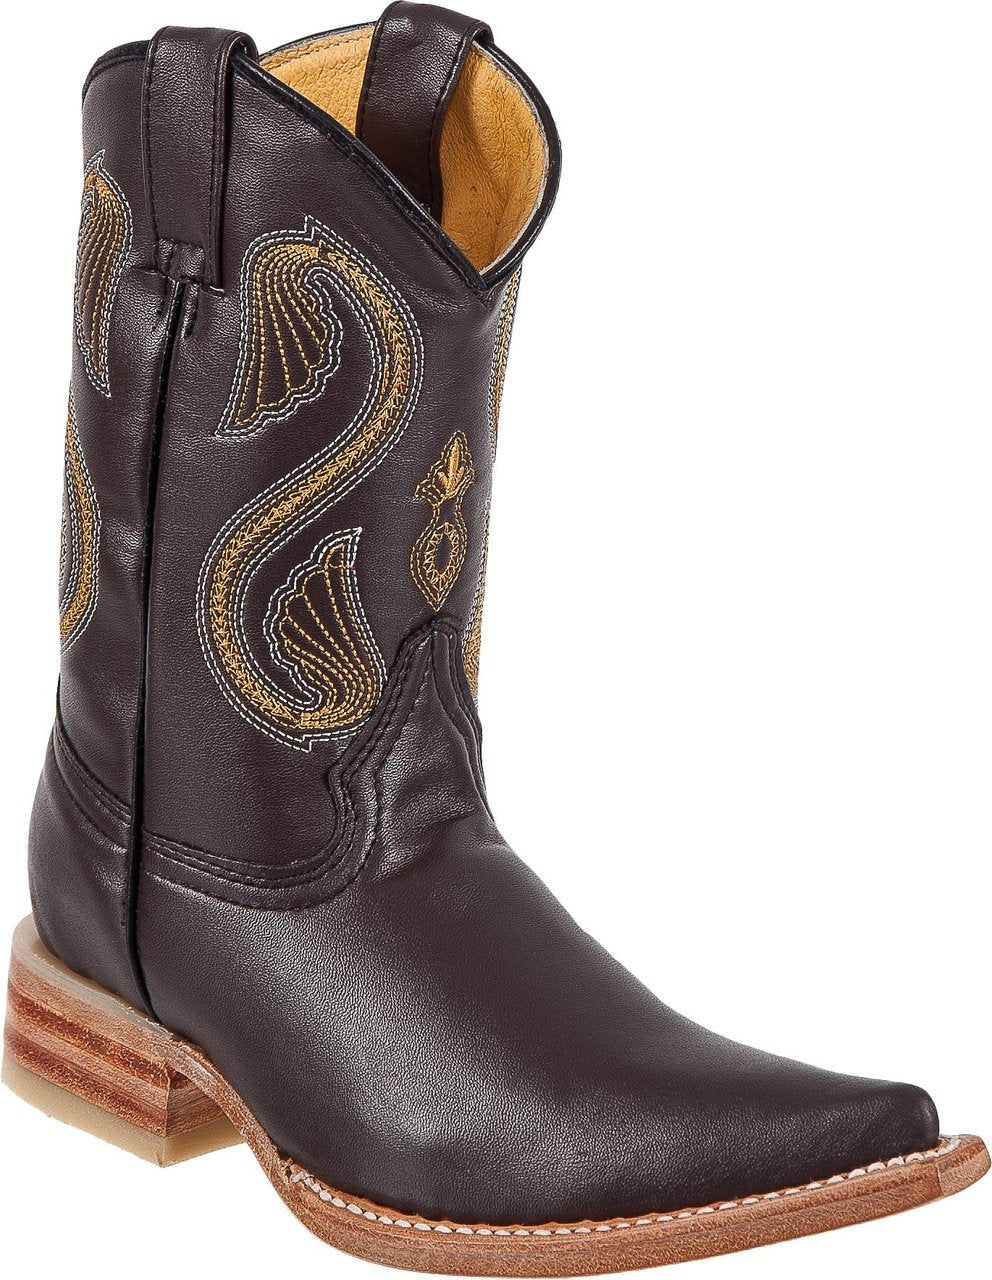 DIEGO'S Kids' Brown Goat Boots - Ch Toe